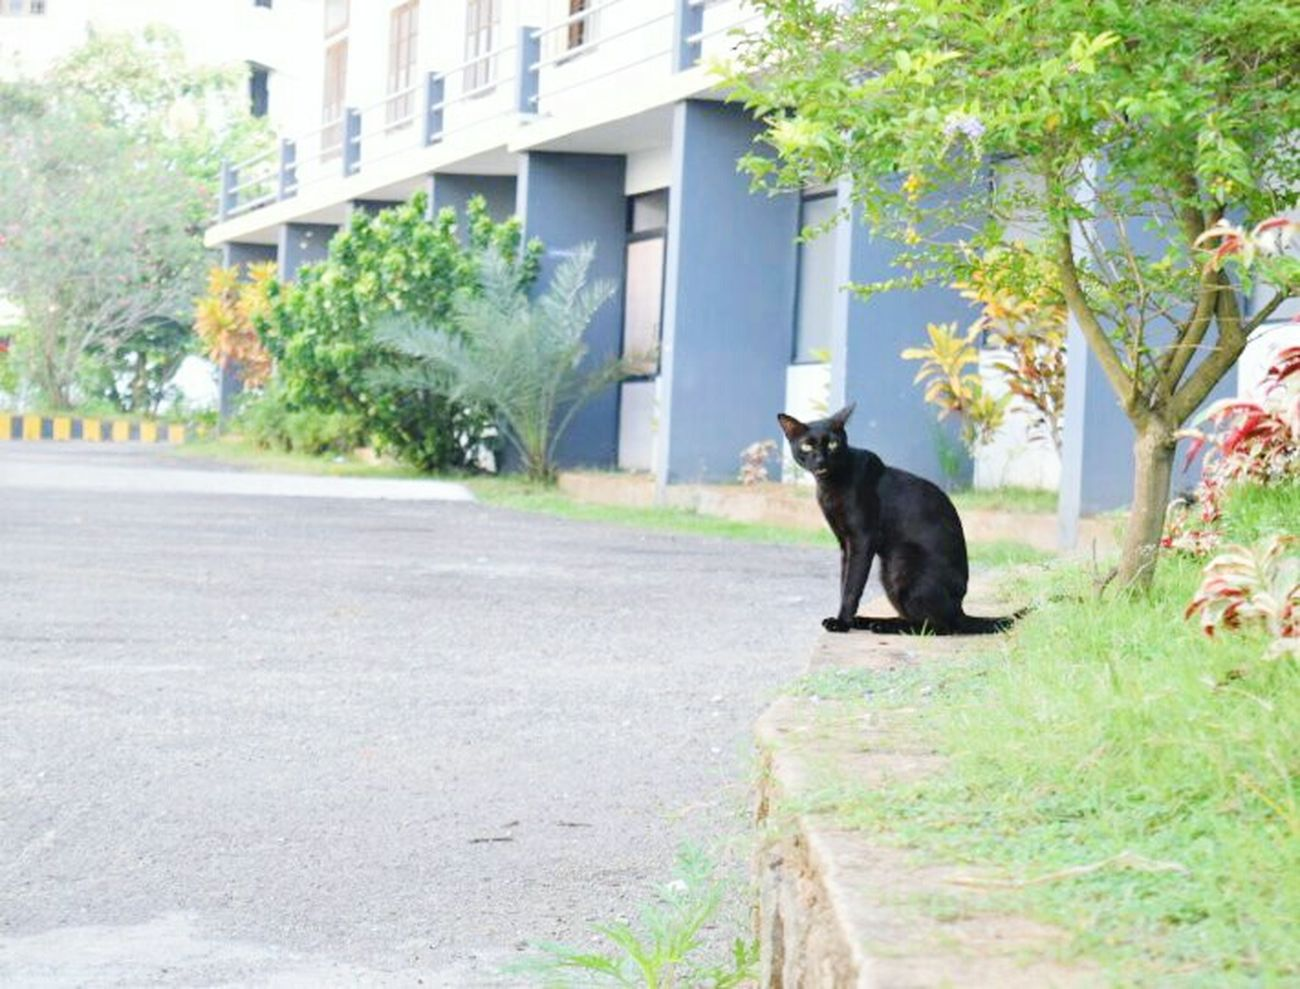 One Animal Animal Outdoors Mammal Road Pets No People Dog Domestic Cat Animal Themes Day Tree Nature Blackcatlove BLackCat